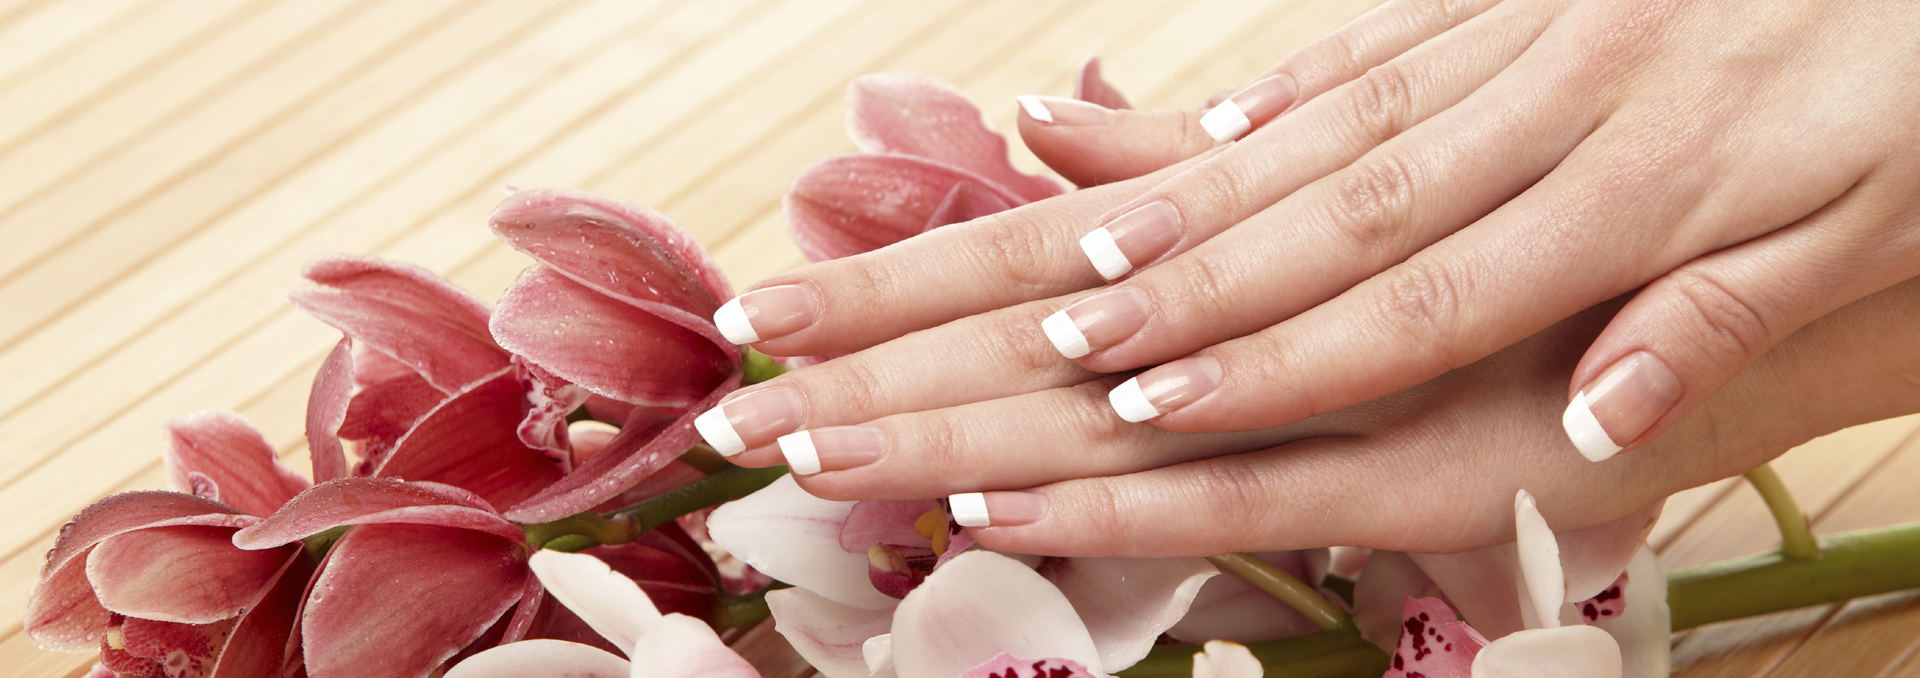 Angel Nails  - Nail salon in Boulder, CO 80301